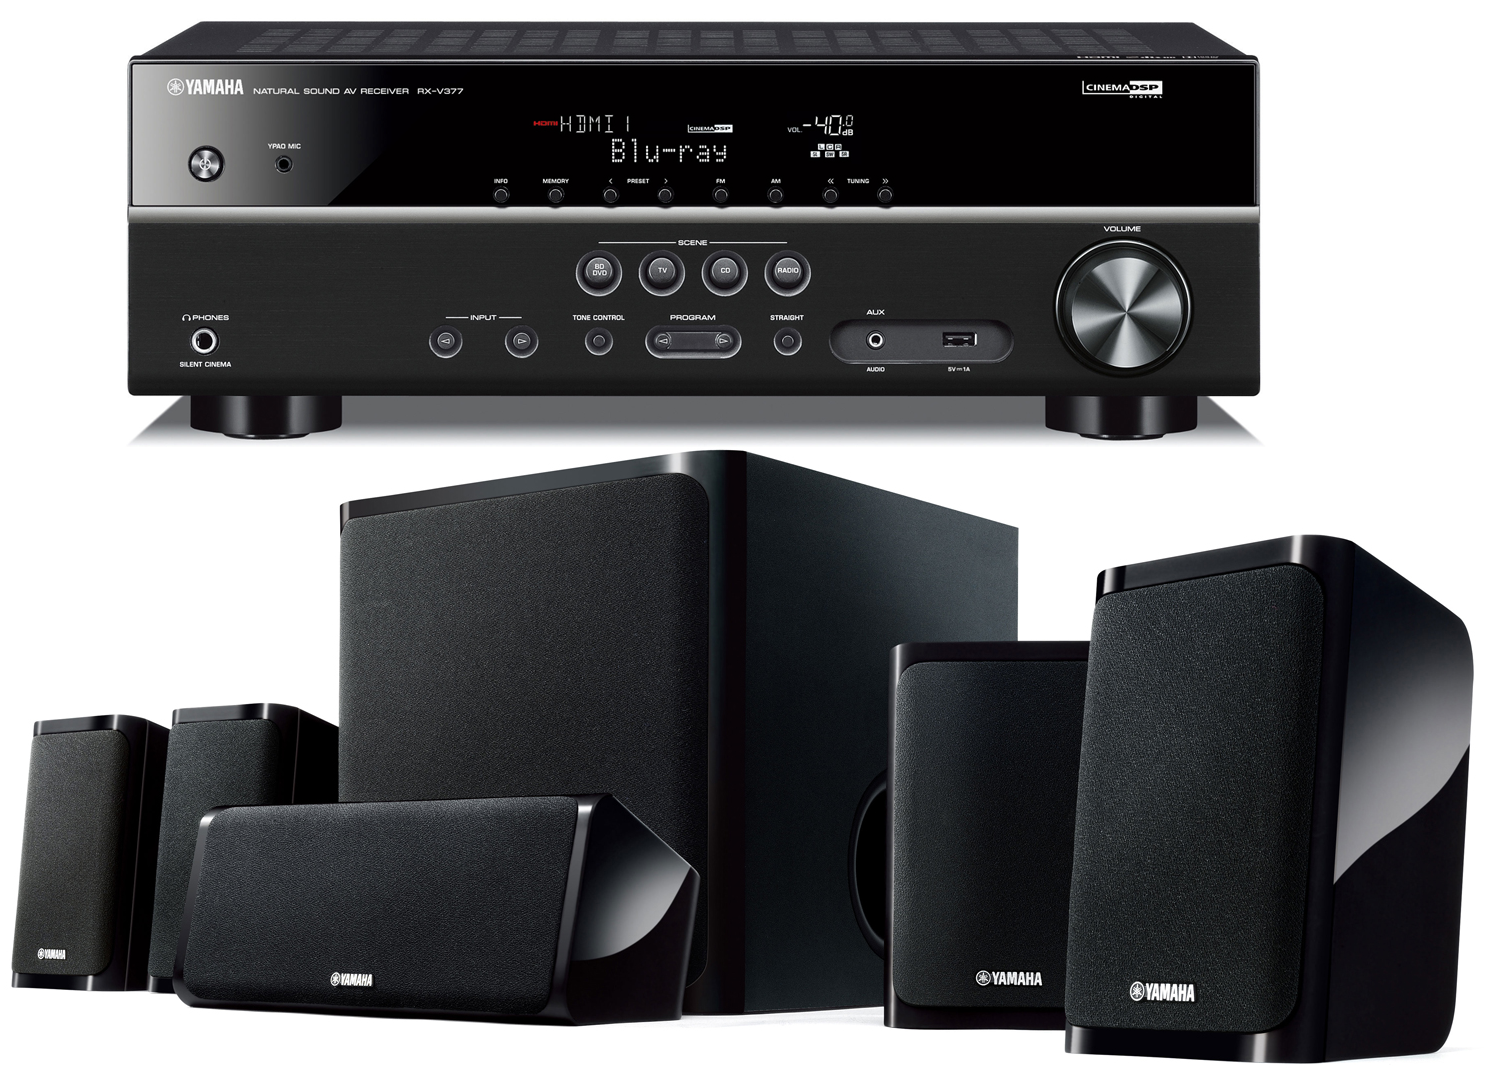 Yamaha yht 4910u 5 1 channel home theater system for Yamaha home stereo systems